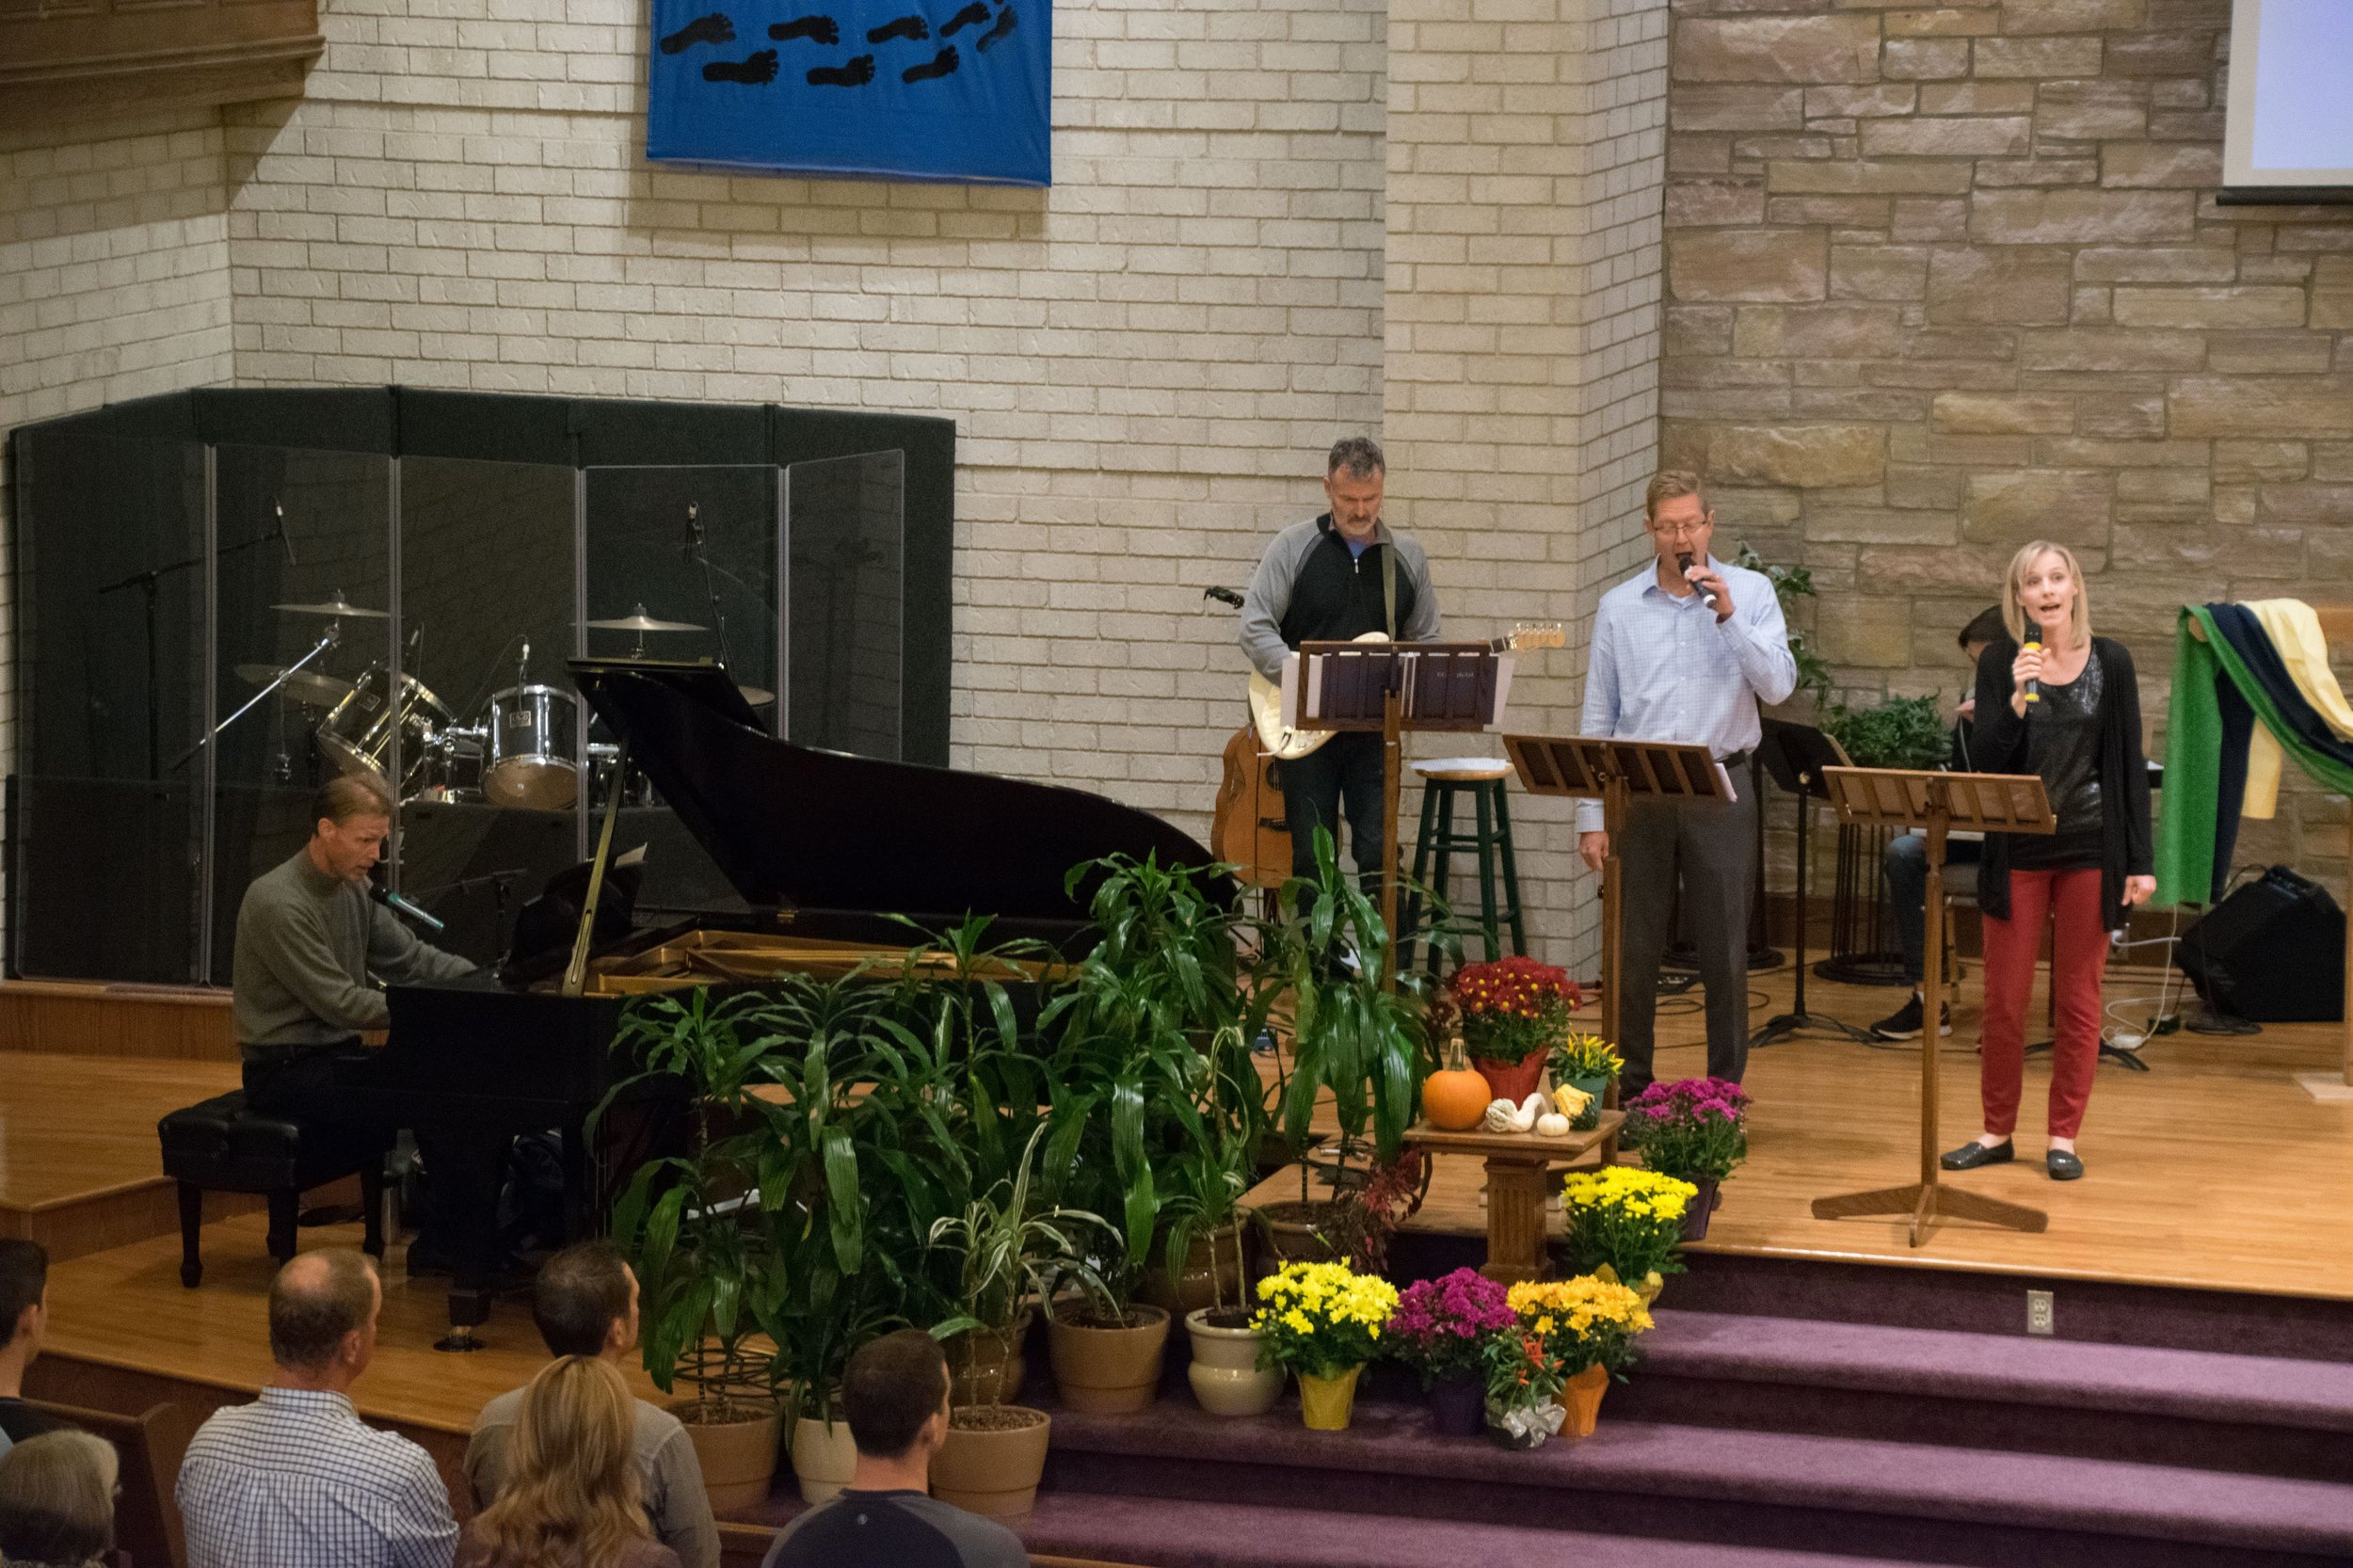 Music - Praise teams lead the congregation in worship. Teams are made up of various instruments and singers. If you would like to share your musical talents contact our music coordinator: Will Lammers